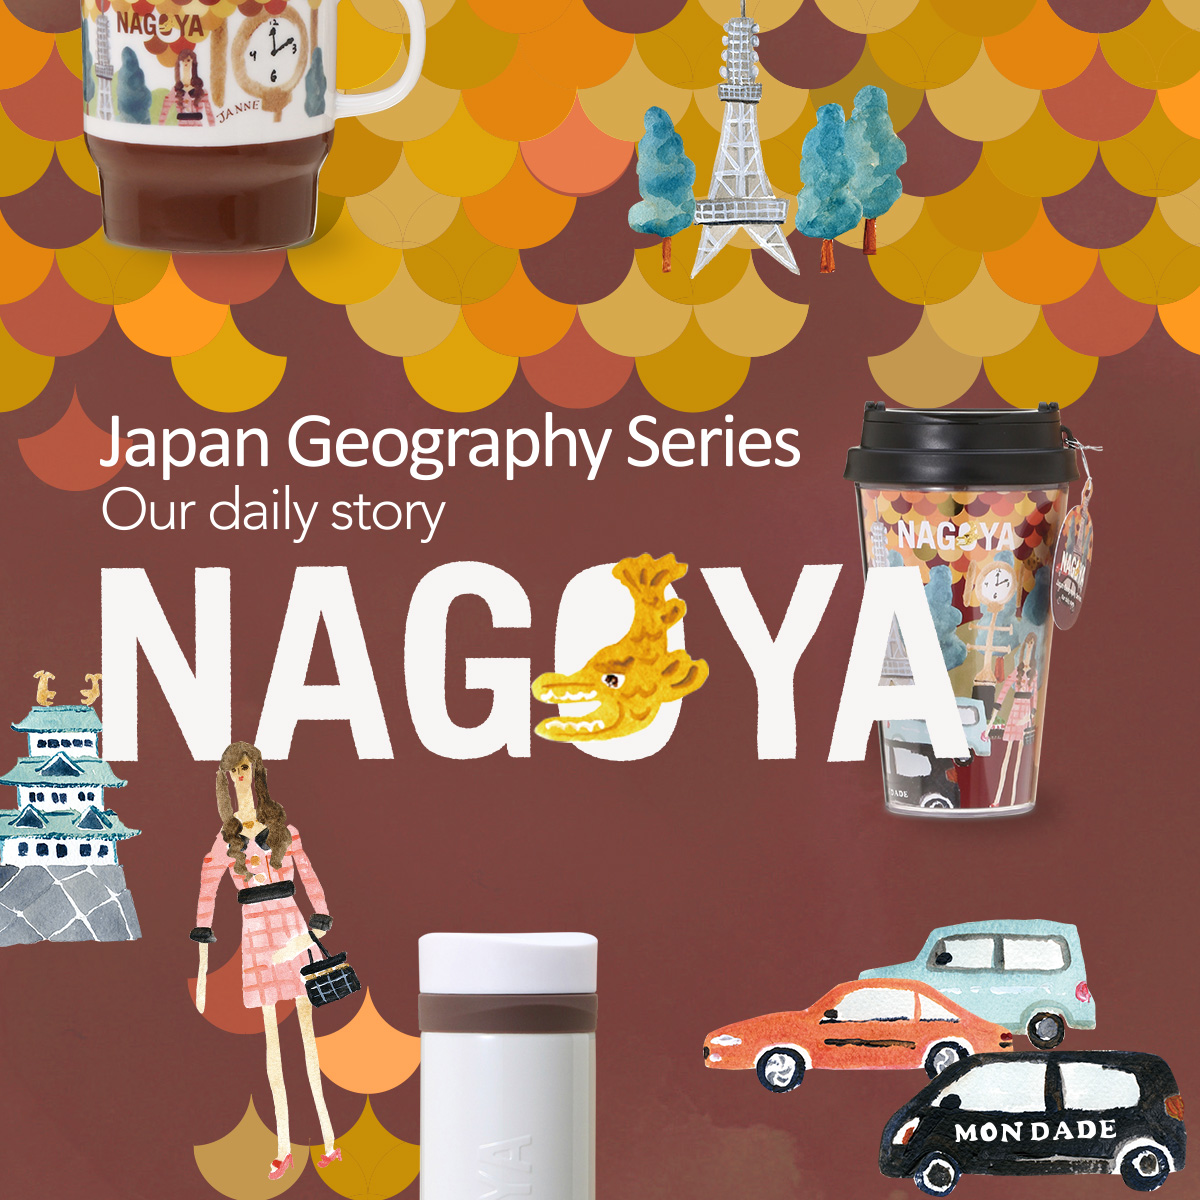 Japan Geography Series 名古屋